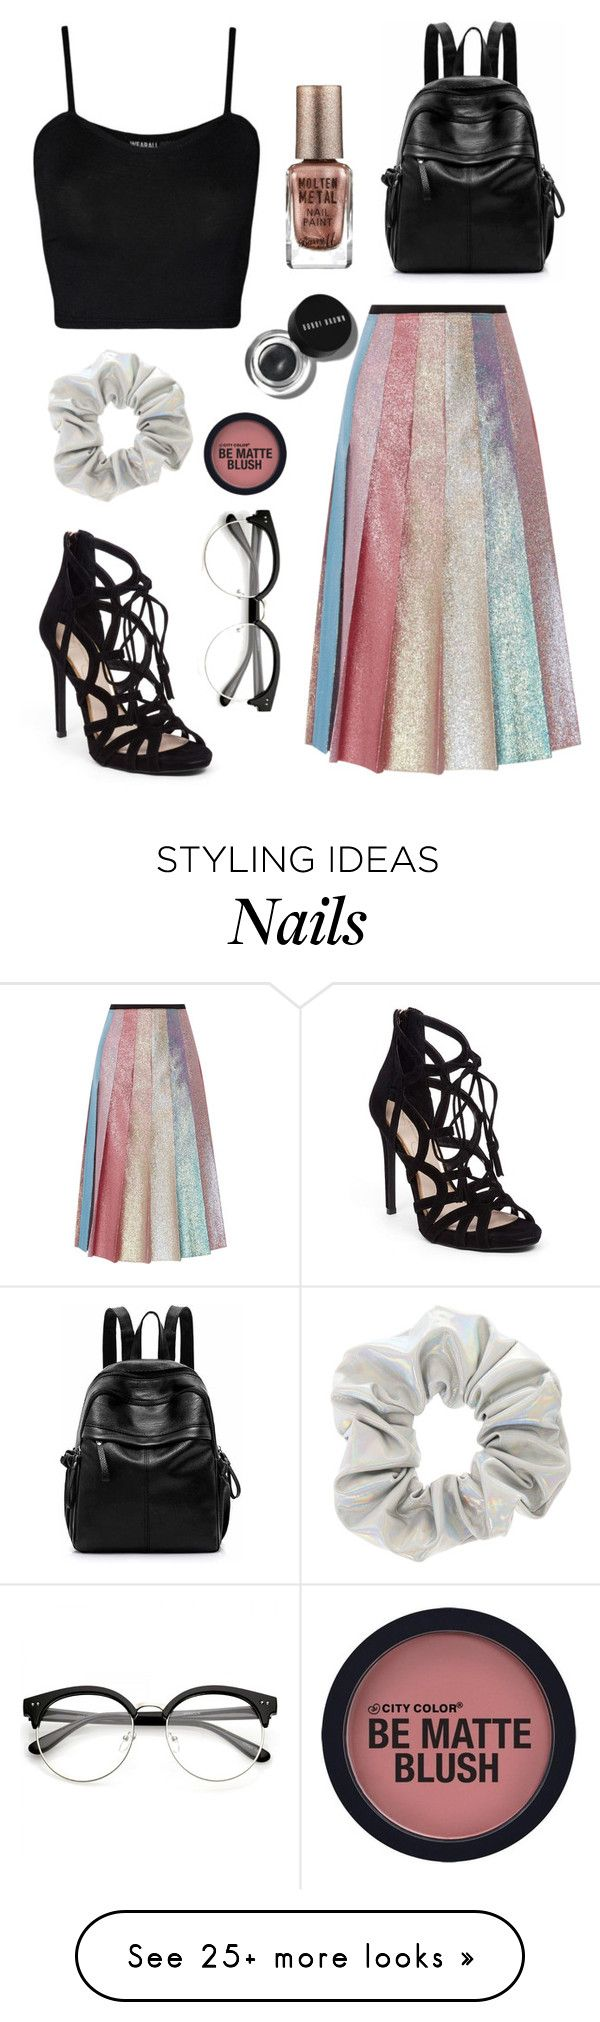 """""""Holoskirt"""" by theatrekid24601 on Polyvore featuring Gucci, WearAll, Jessica Simpson, Barry M and Bobbi Brown Cosmetics"""